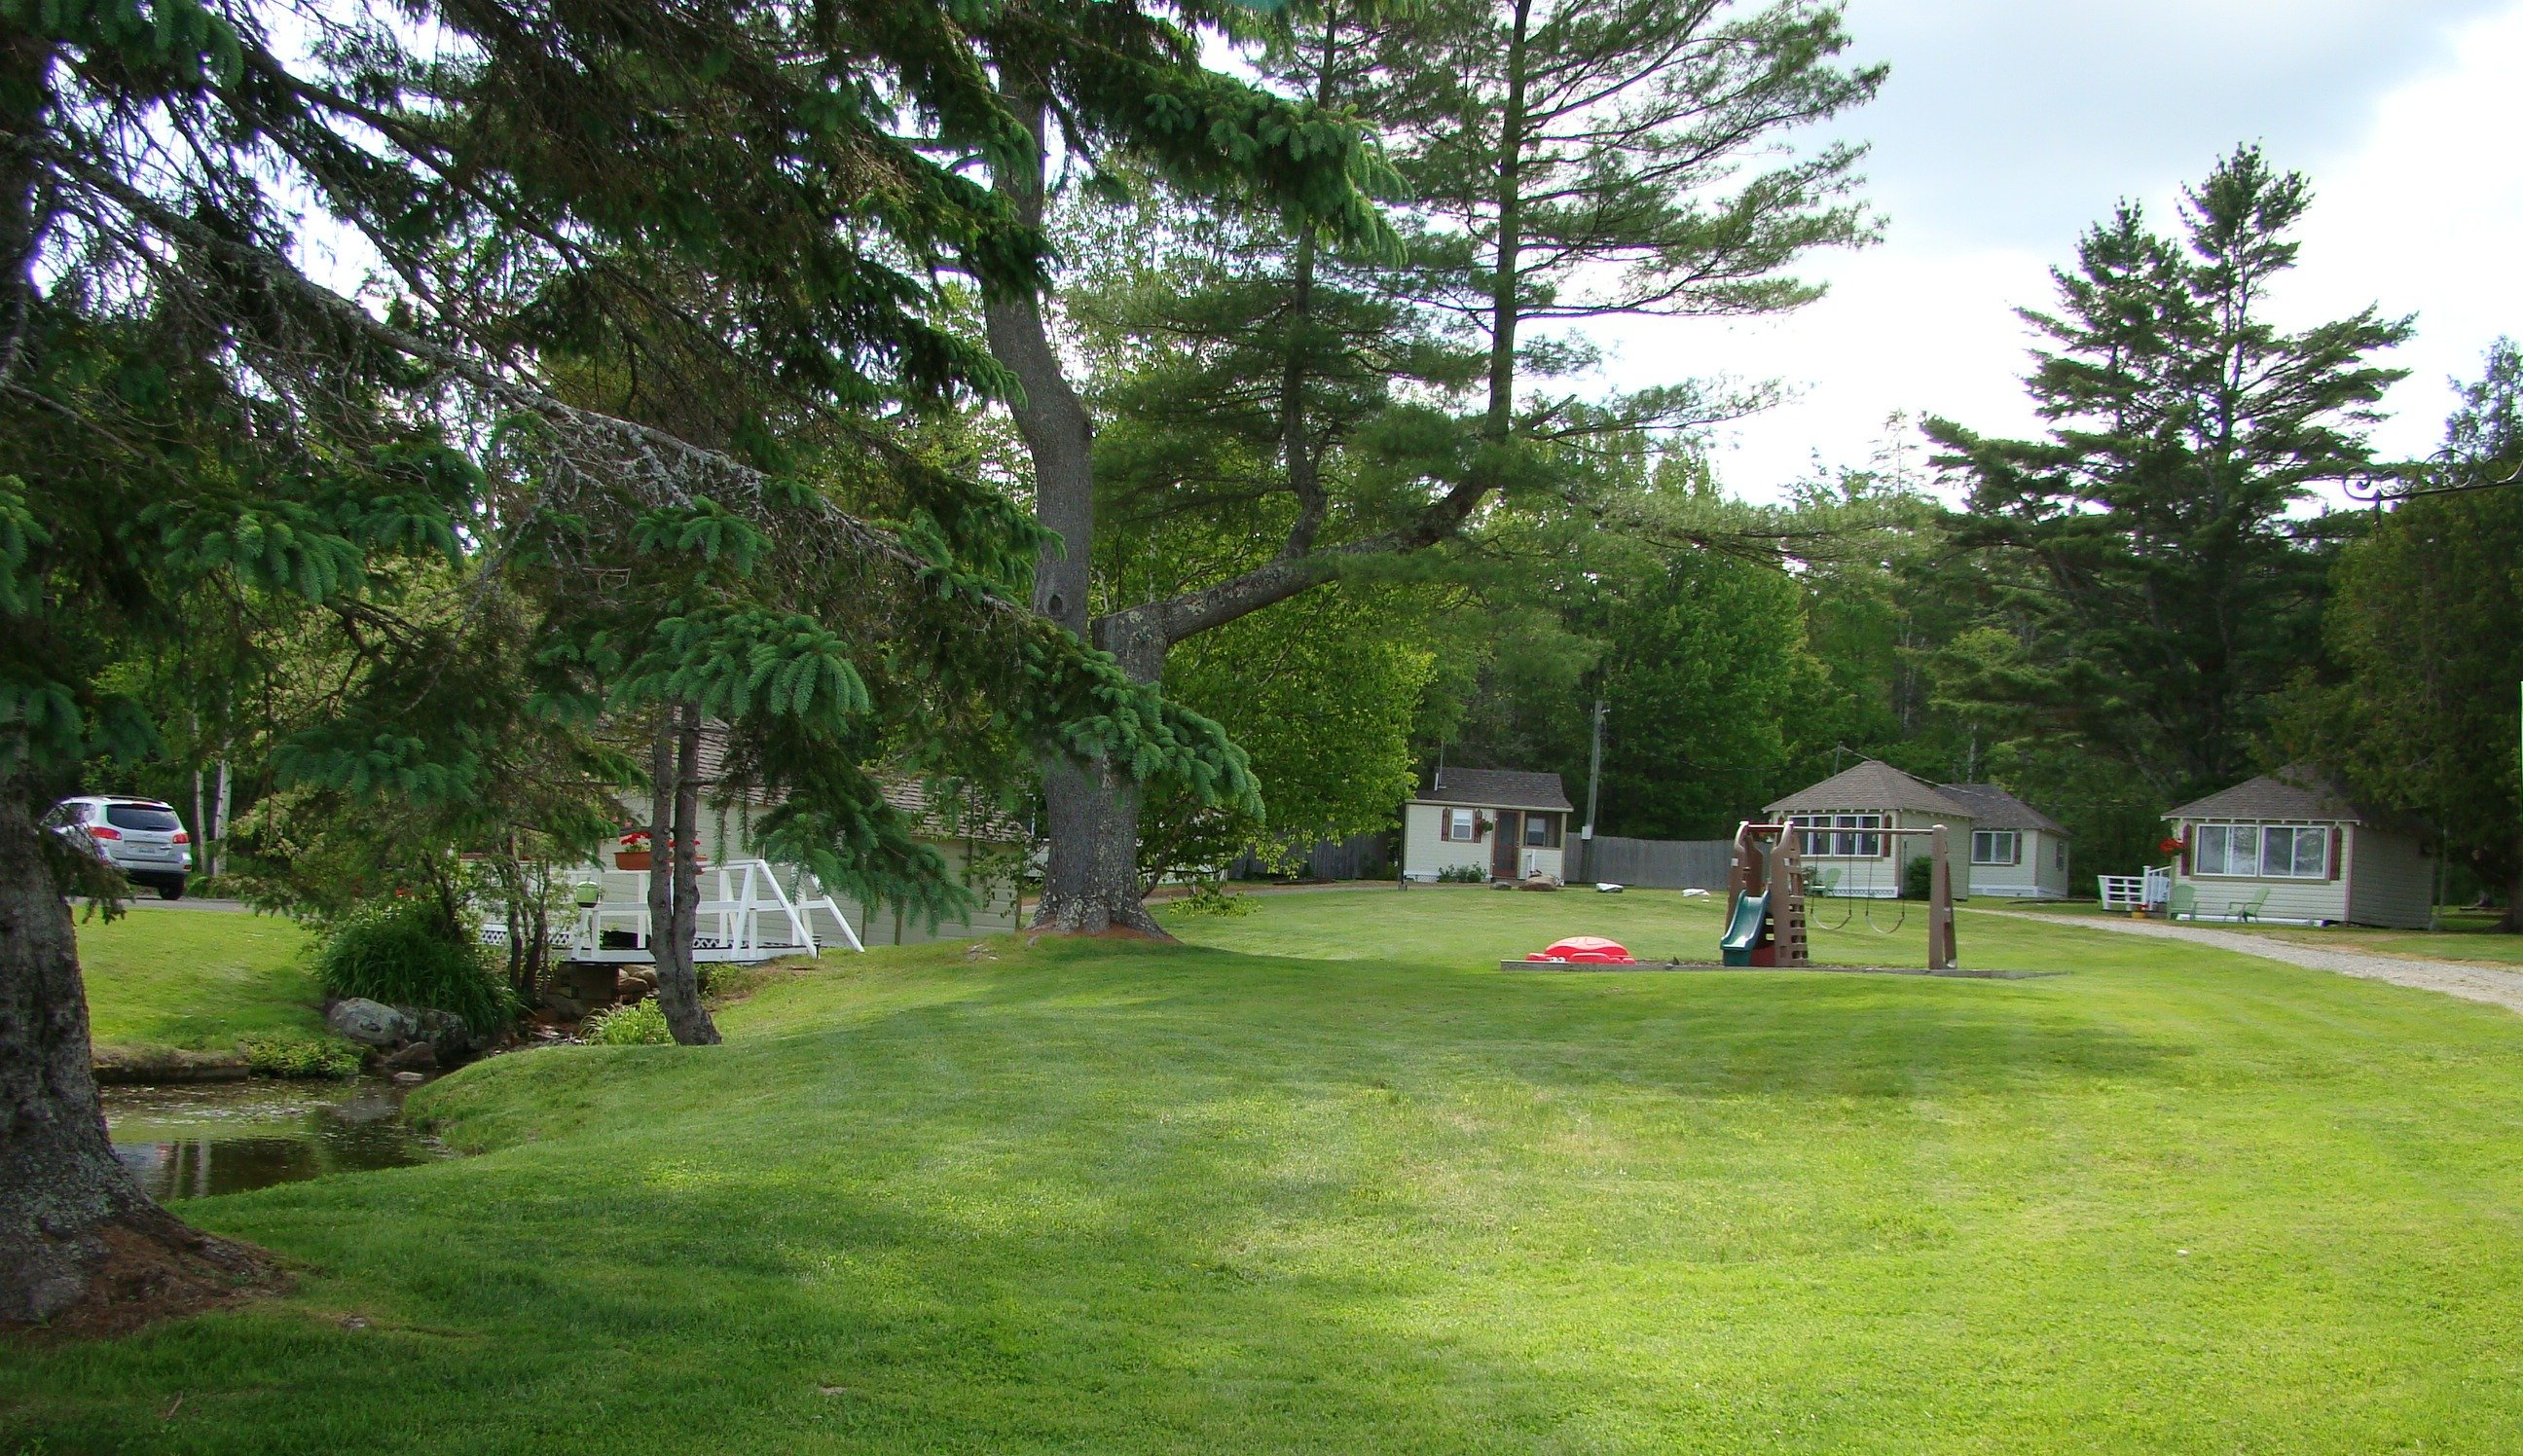 Park-like setting for cottages and motel